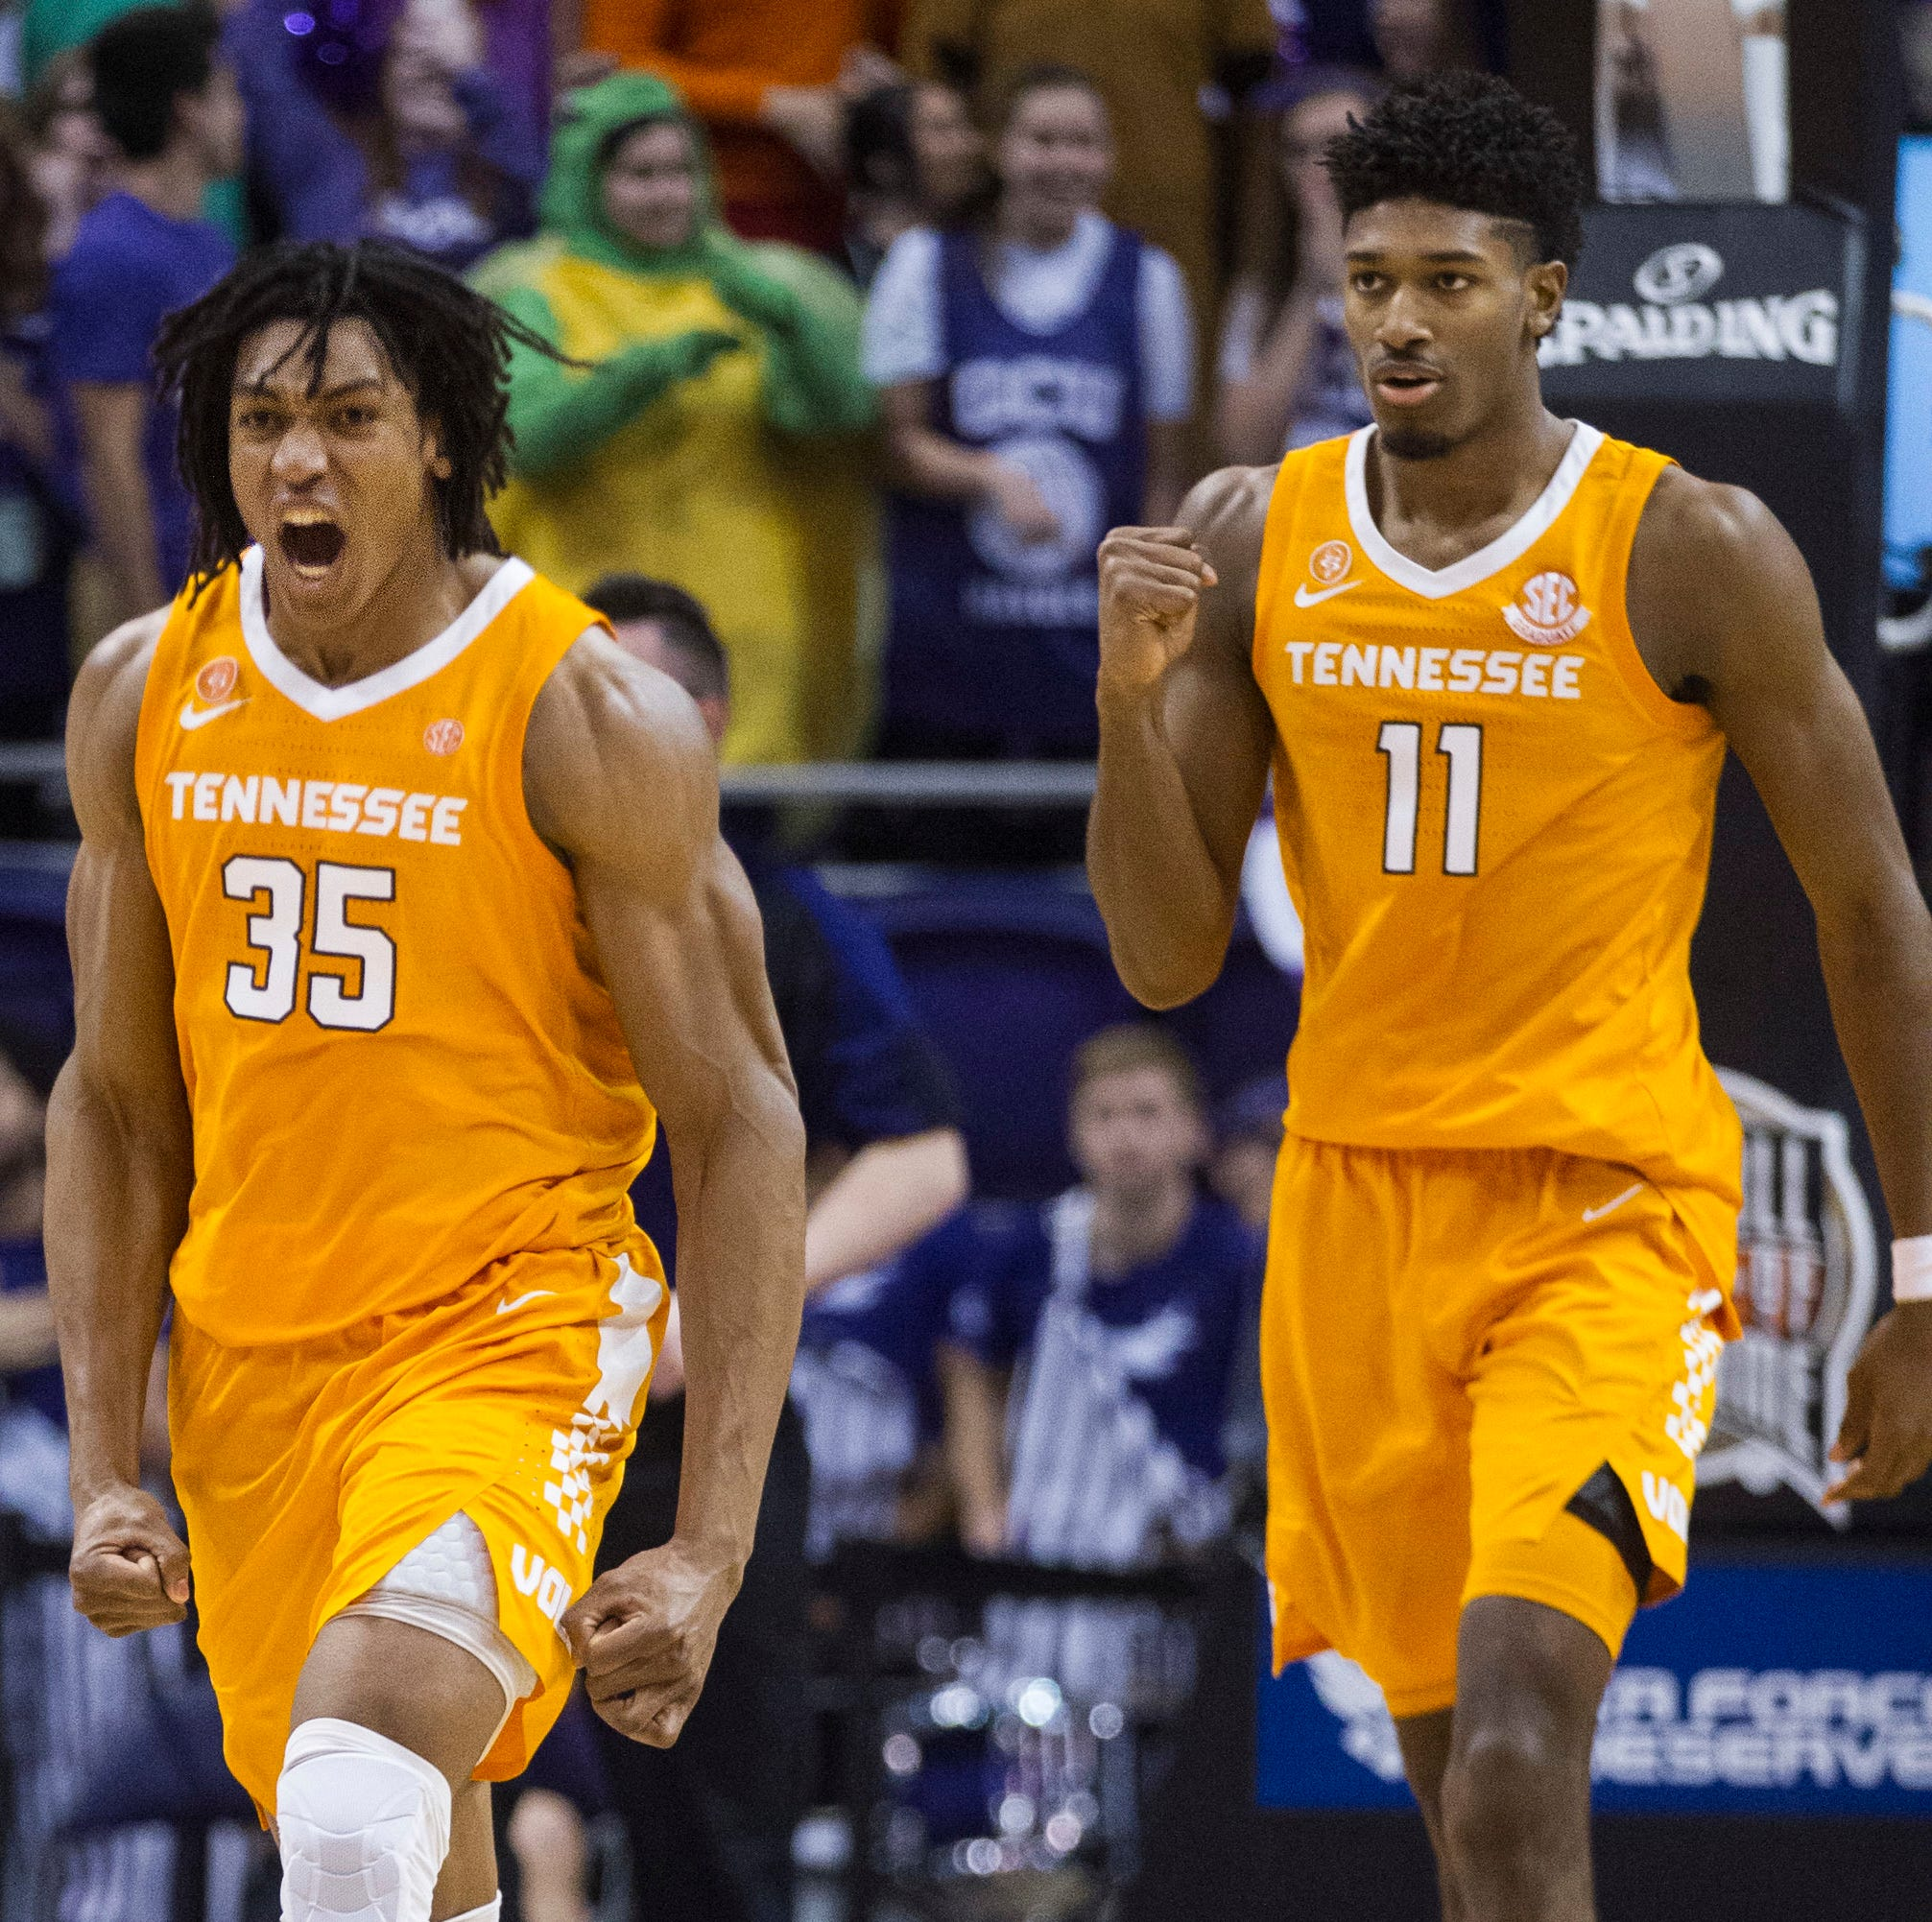 Where UT Vols basketball is ranked in Associated Press poll after Gonzaga win